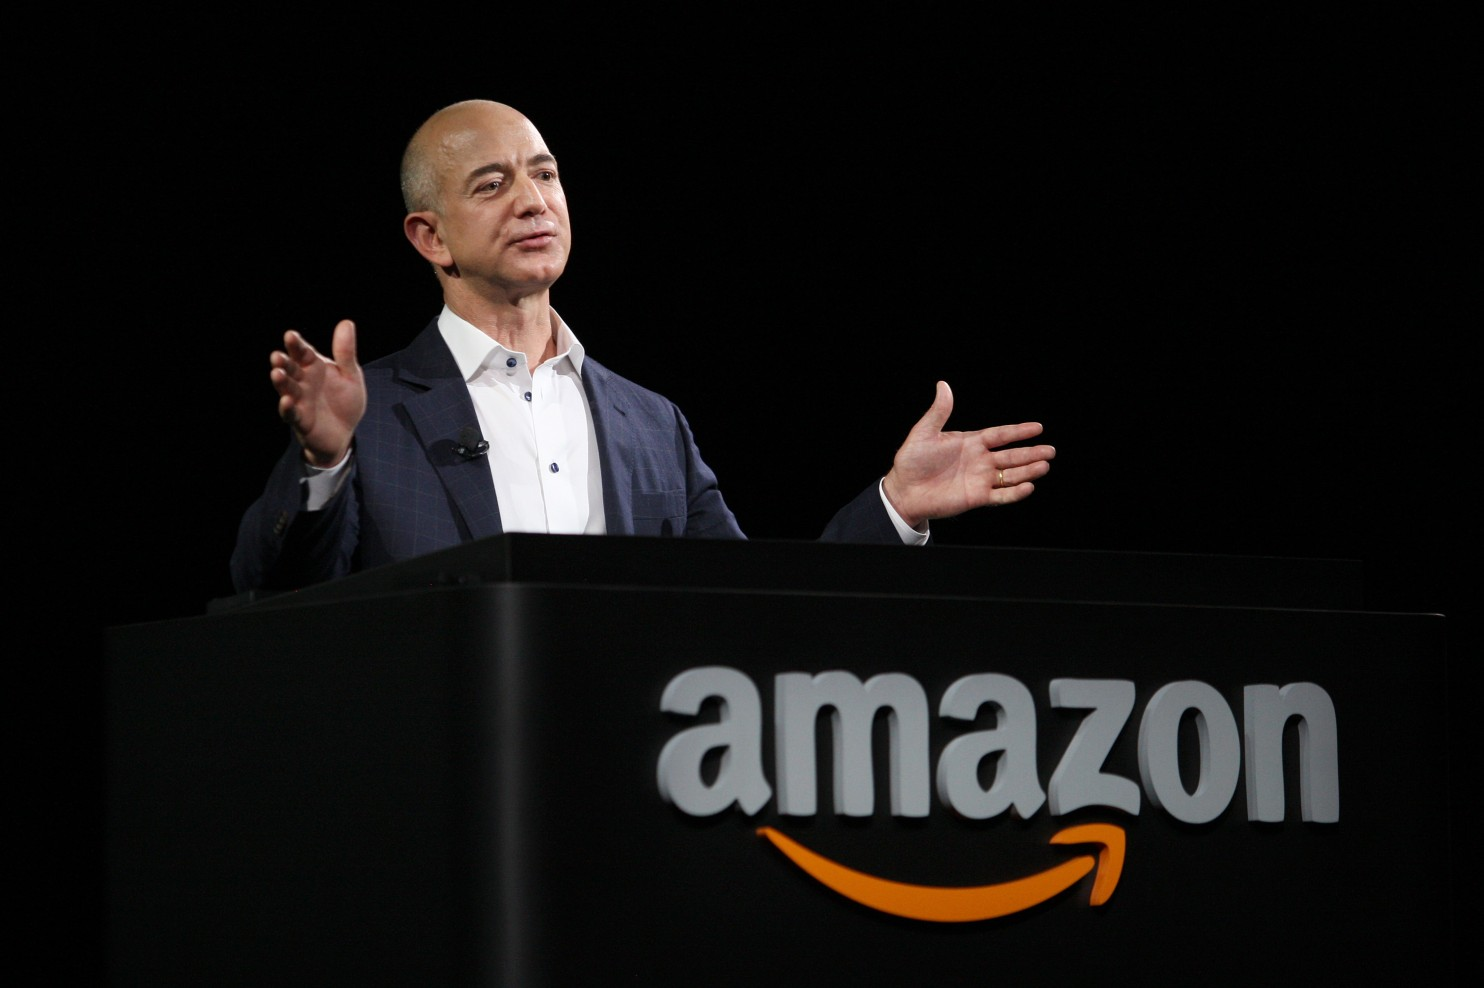 7 Insightful Quotes from Amazon s Letter to holders